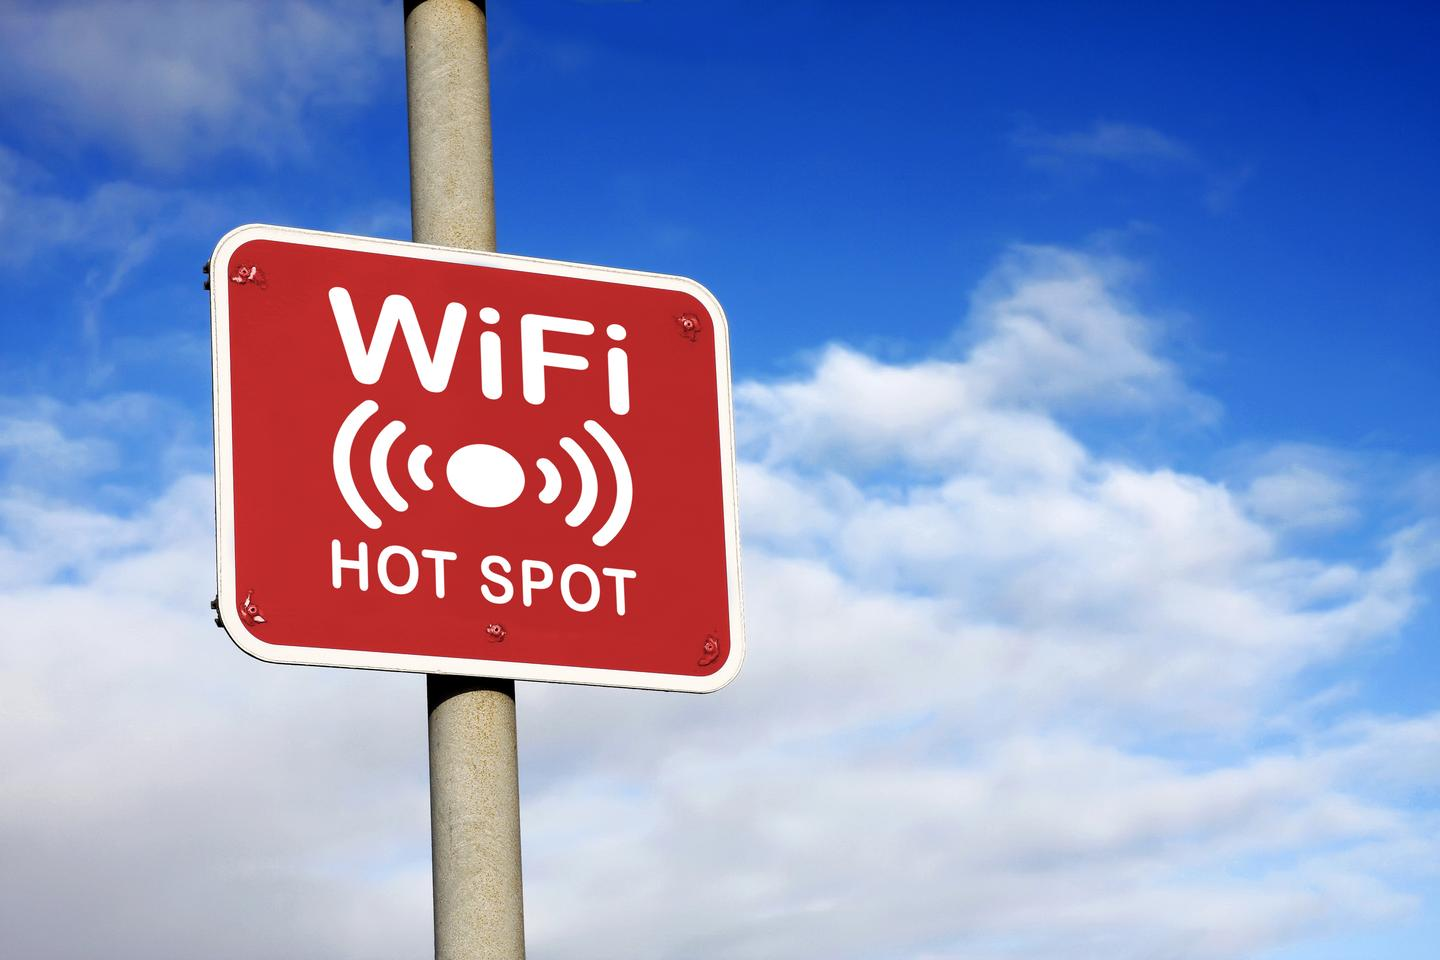 The Wi-Fi virus could reportedly spread as quickly as an airborne biological virus (Image: Shutterstock)